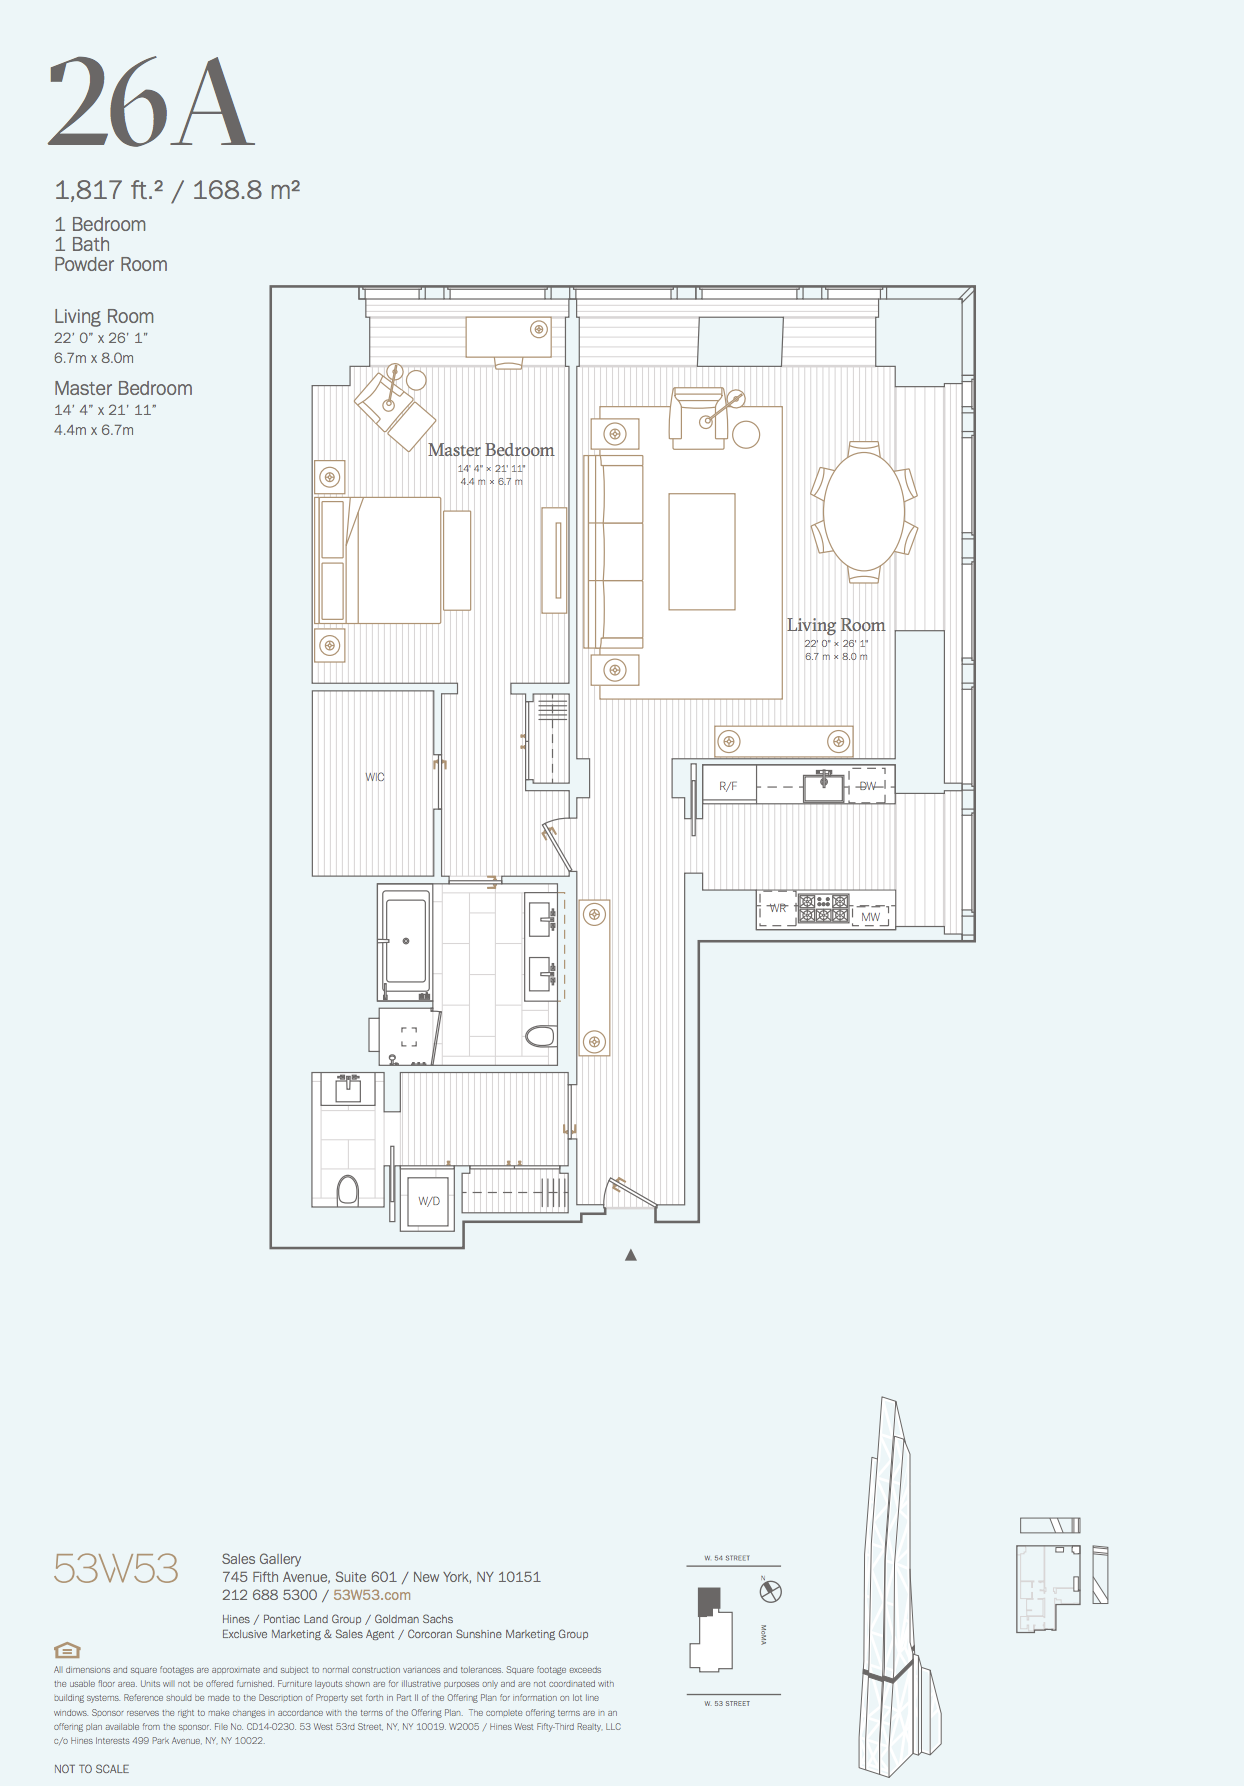 26a 1 Bedroom 1 5 Bathrooms 1 817 Sq Ft 168 8 Sq M View Of The City Open To North And Penthouse Apartment Floor Plan Floor Plans Bathroom Floor Plans